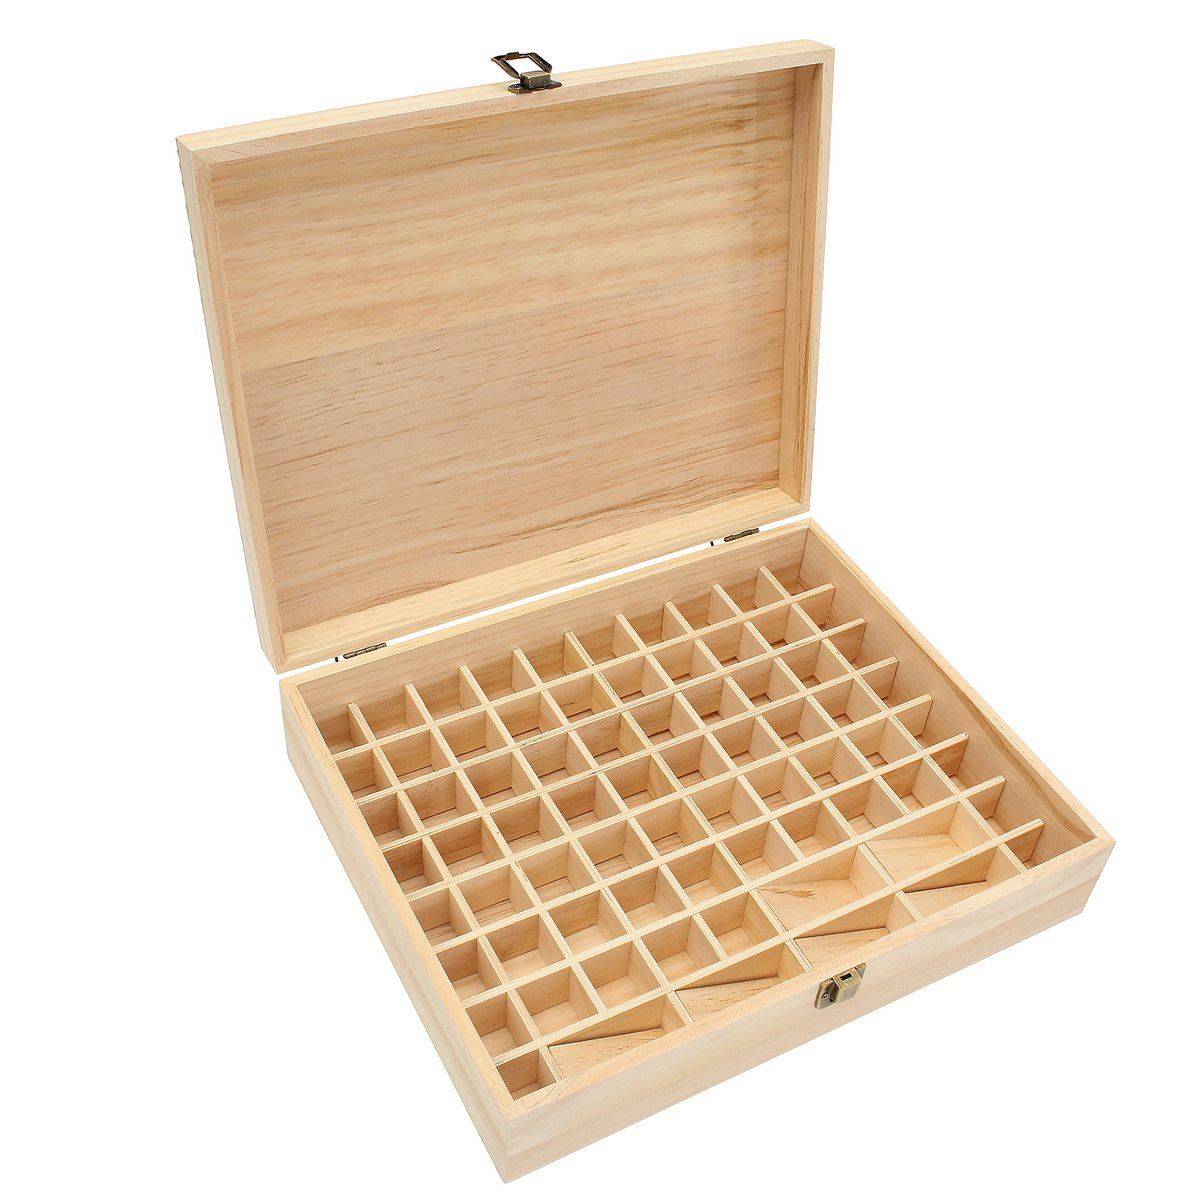 Wooden Essential Oils Storage Box 74 Holes Aromatherapy Natural Pine Wood Jewelry Organizer Storage Case Decorative